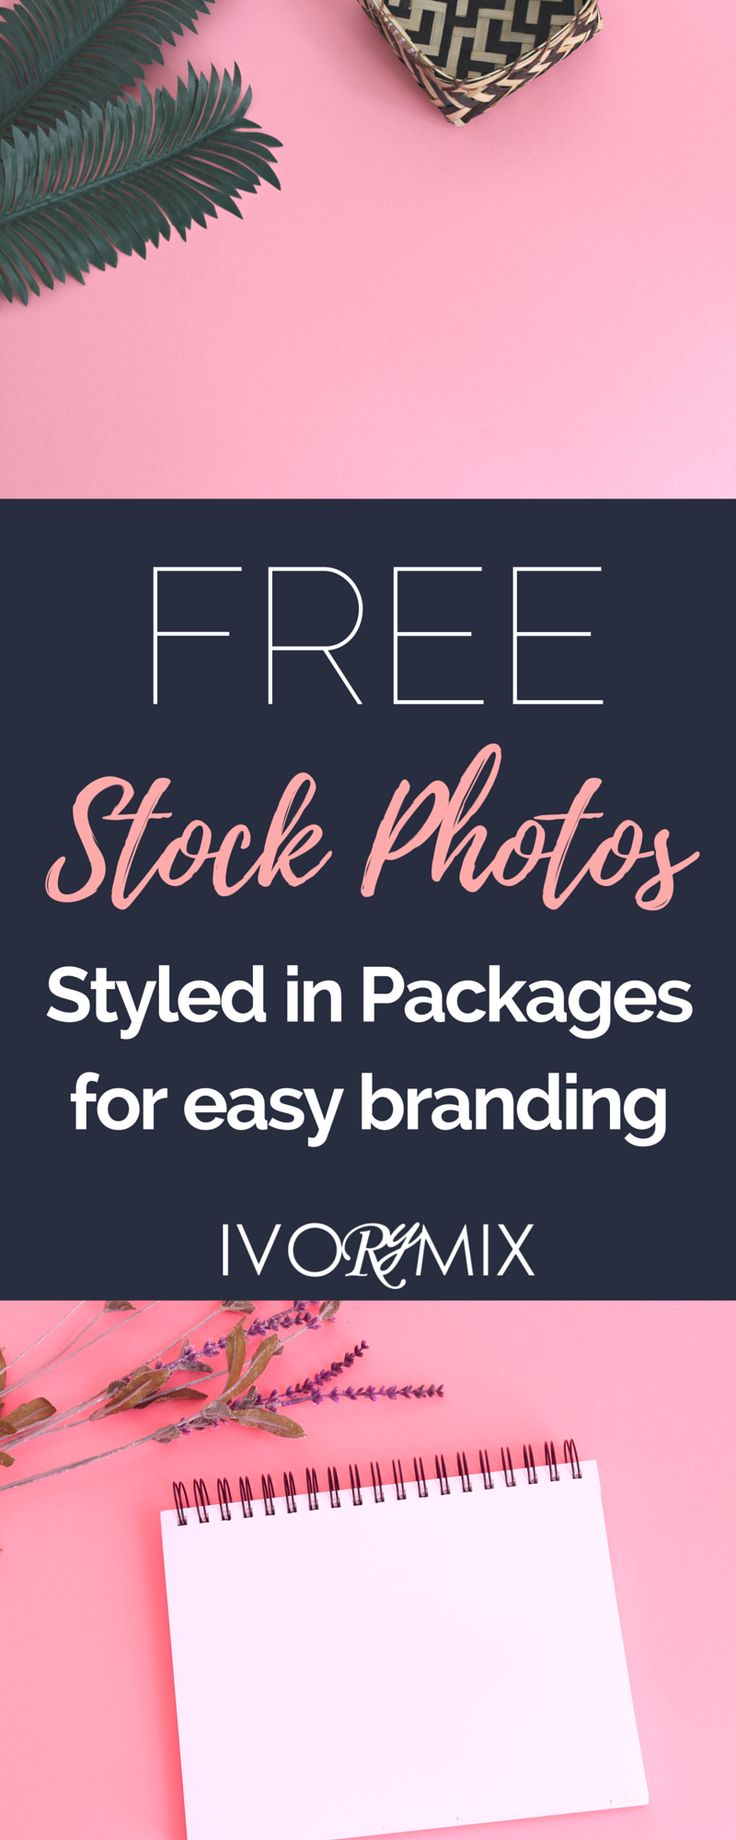 Free Styled Stock Photo Library How would you like access to free stylish stock photos and get more delivered to you every month? Grab yourFREE stock photos! Just tell us where to email them below. Wait, they're free? Ivorymix and the free styled stock photos are for bloggers and entrepreneurs of all types, and yes – they're free! The library is always fresh and there are over 100 in the exclusive library of photos at any given time. These stock photos come in packages of about 10 new…